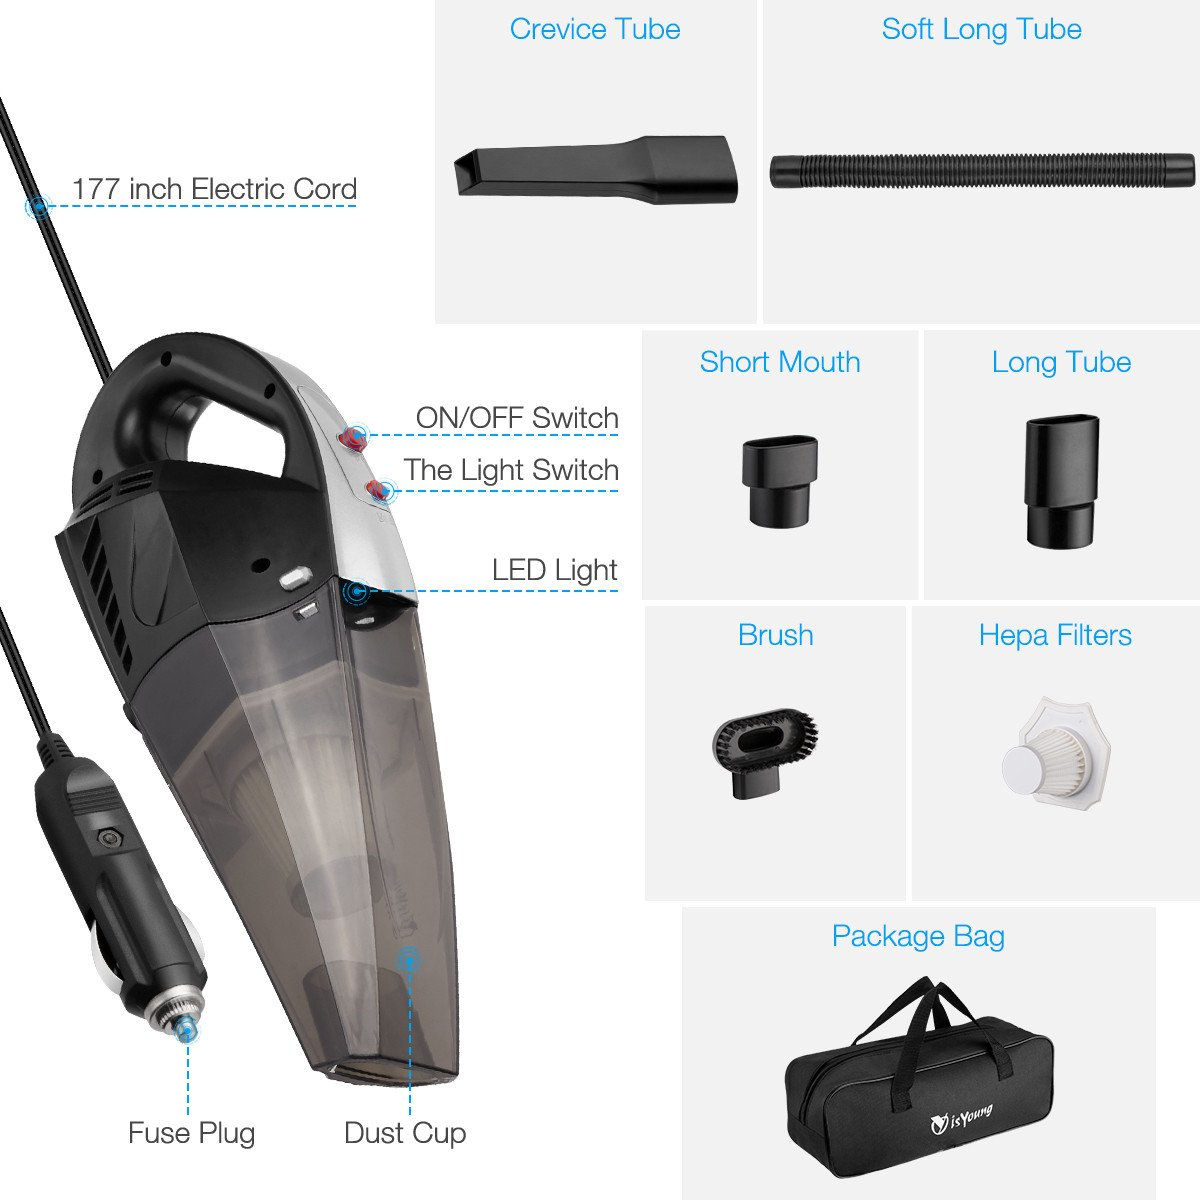 isYoung Car Vacuum Cleaner, High Power Handheld Vaccum Cleaner for Car, Auto Vacuum Cleaner Stronger Suction with LED Light, Carrying Bag, HEPA Filter - Black Silver[Upgraded]